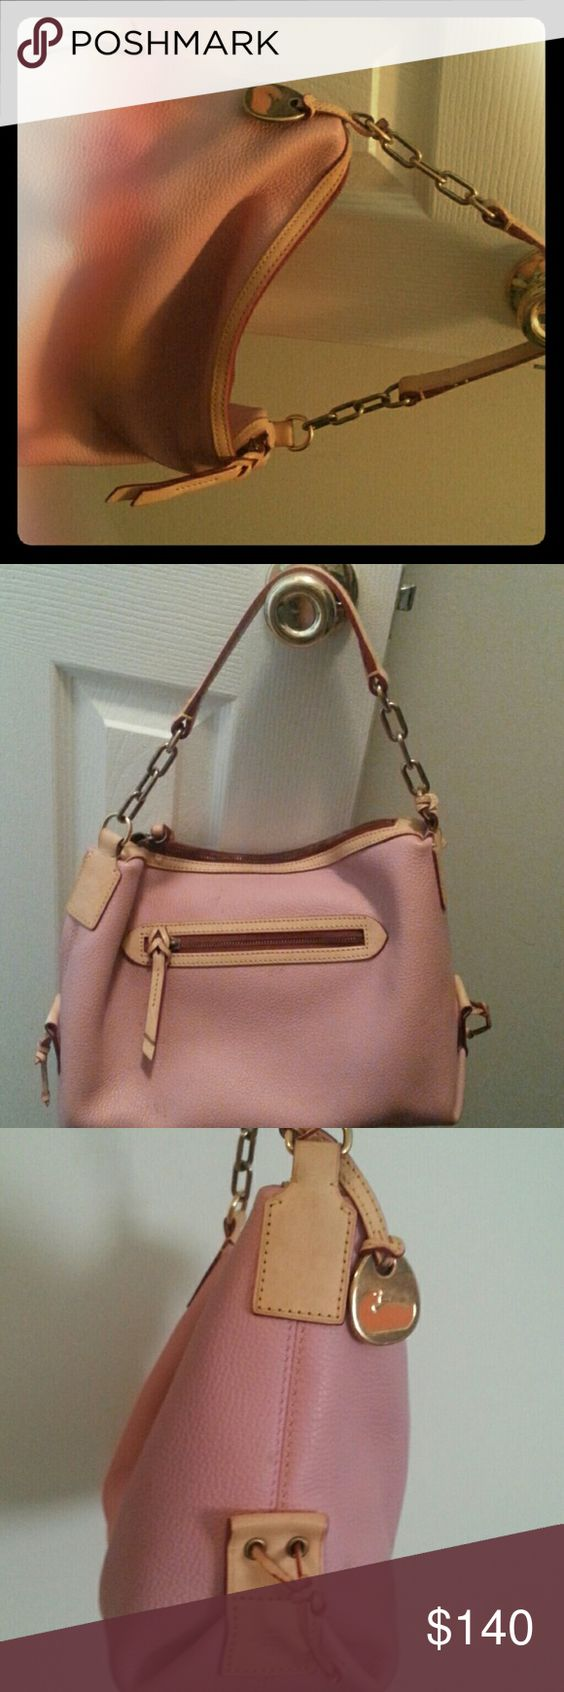 Dooney & bourke handbag Light pink, leather Dooney & Bourke Bags Satchels